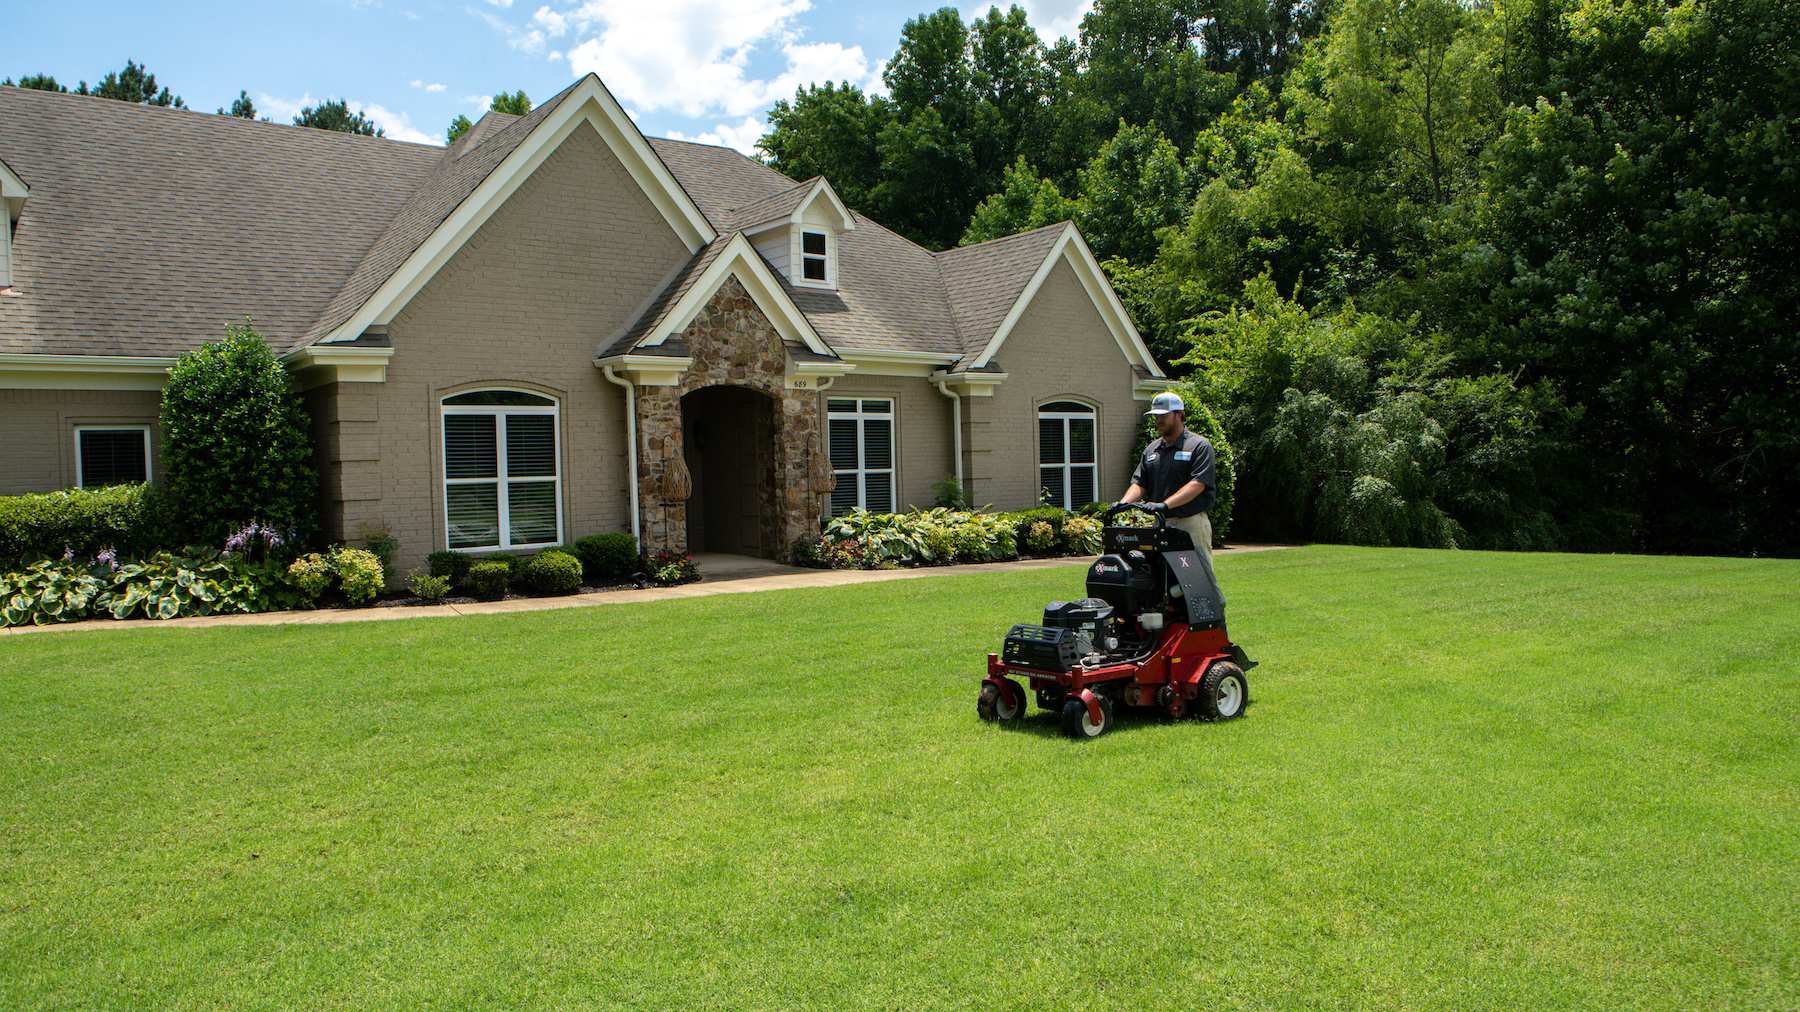 Perform lawn aeration before overseeding